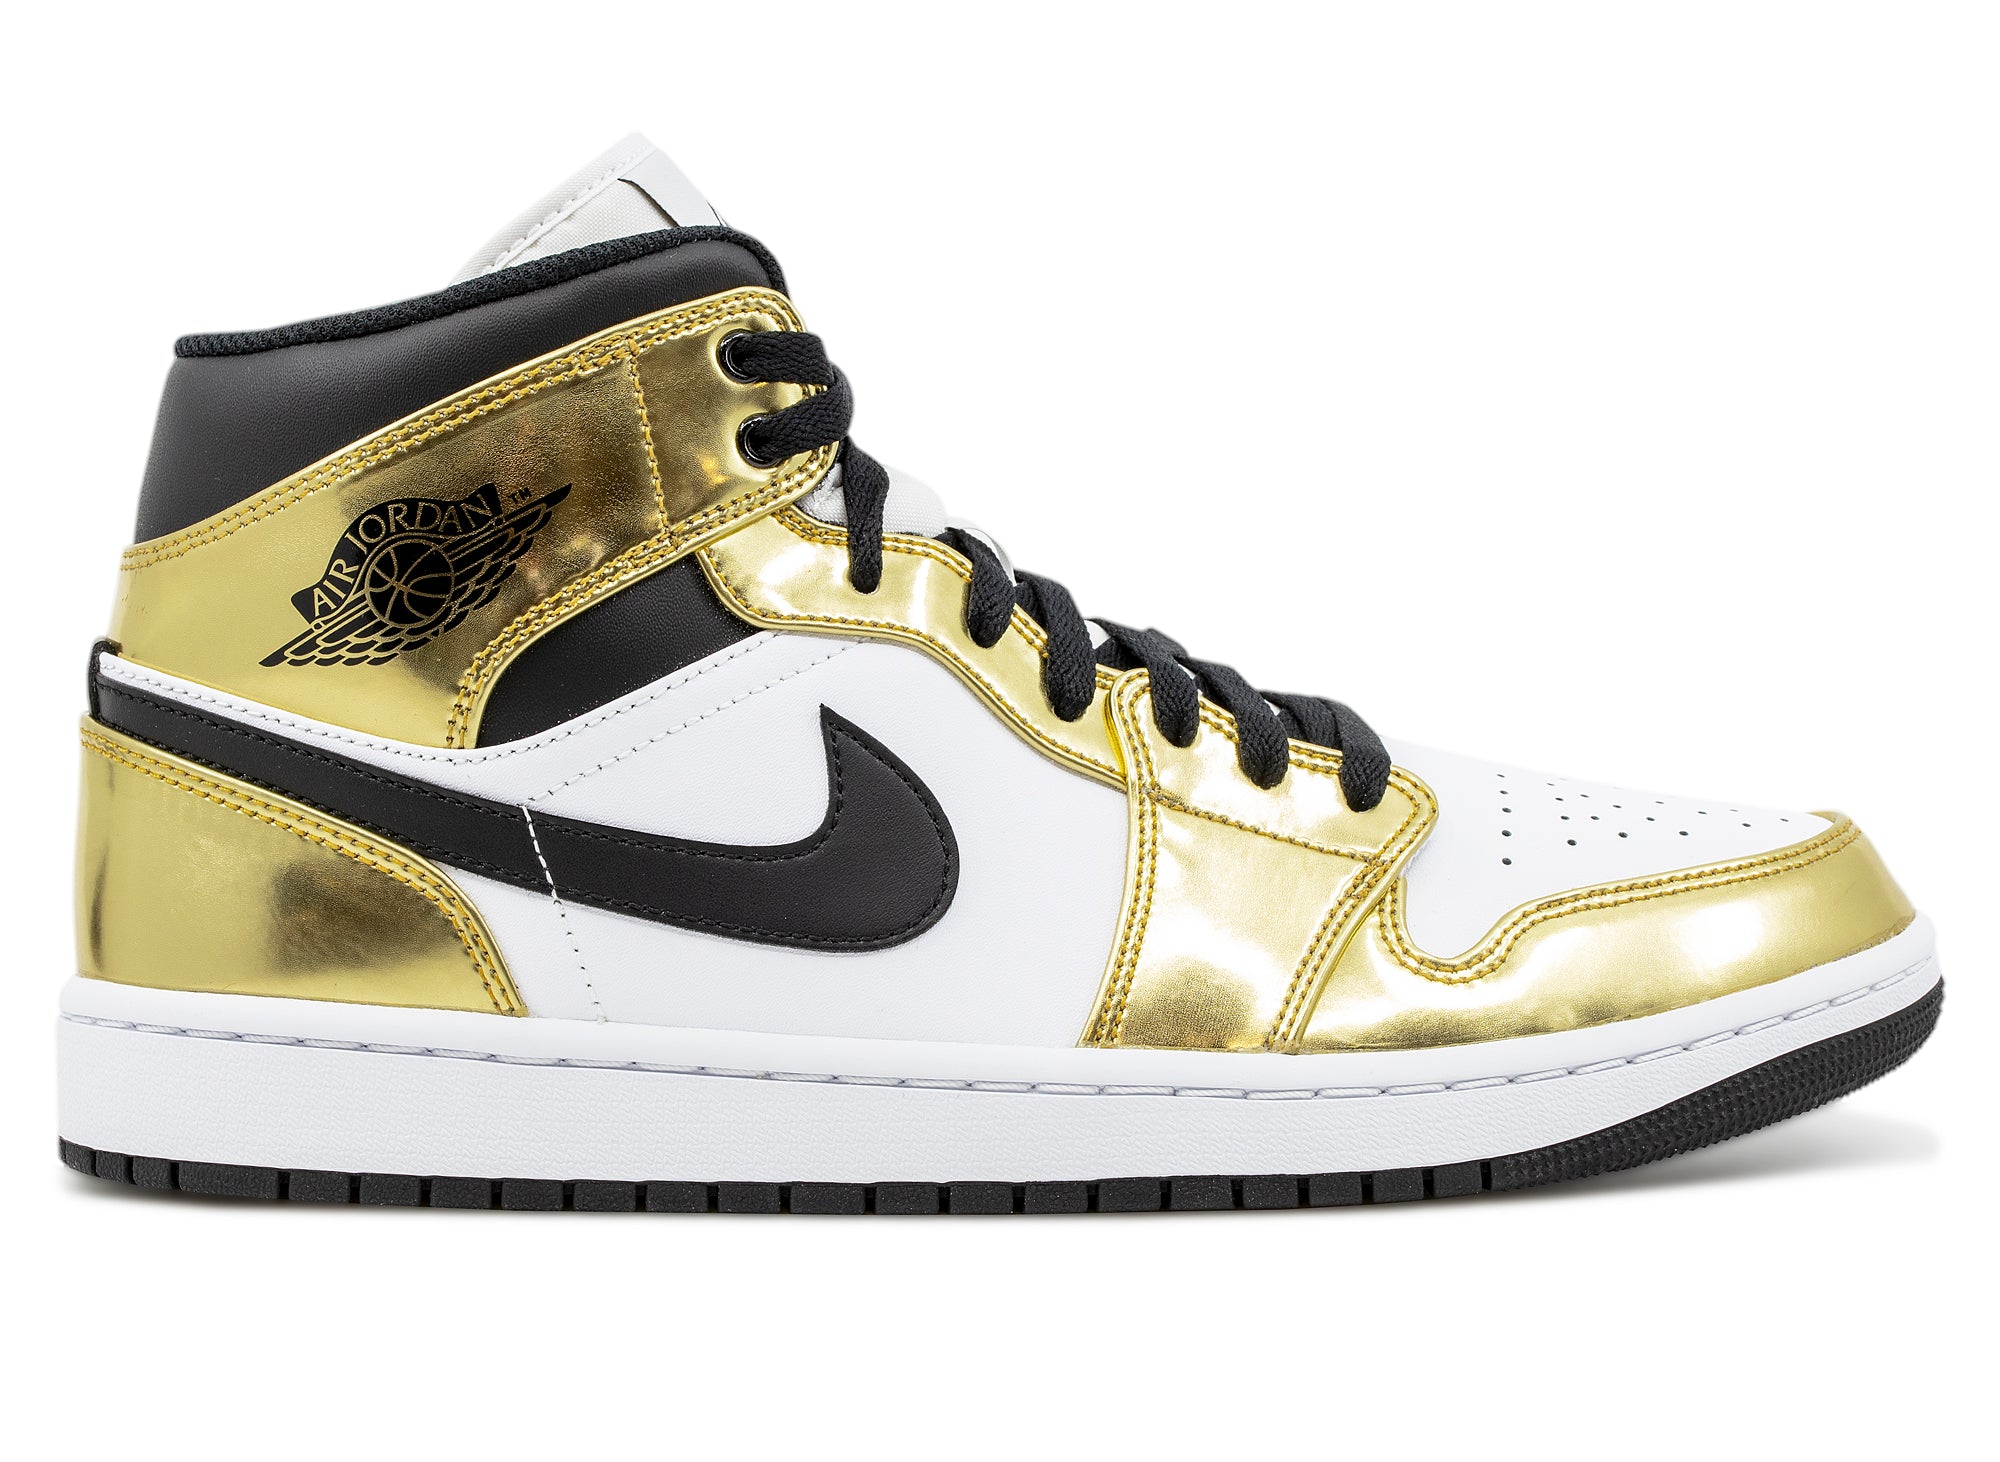 Air Jordan 1 Mid SE 'White Metallic Gold'